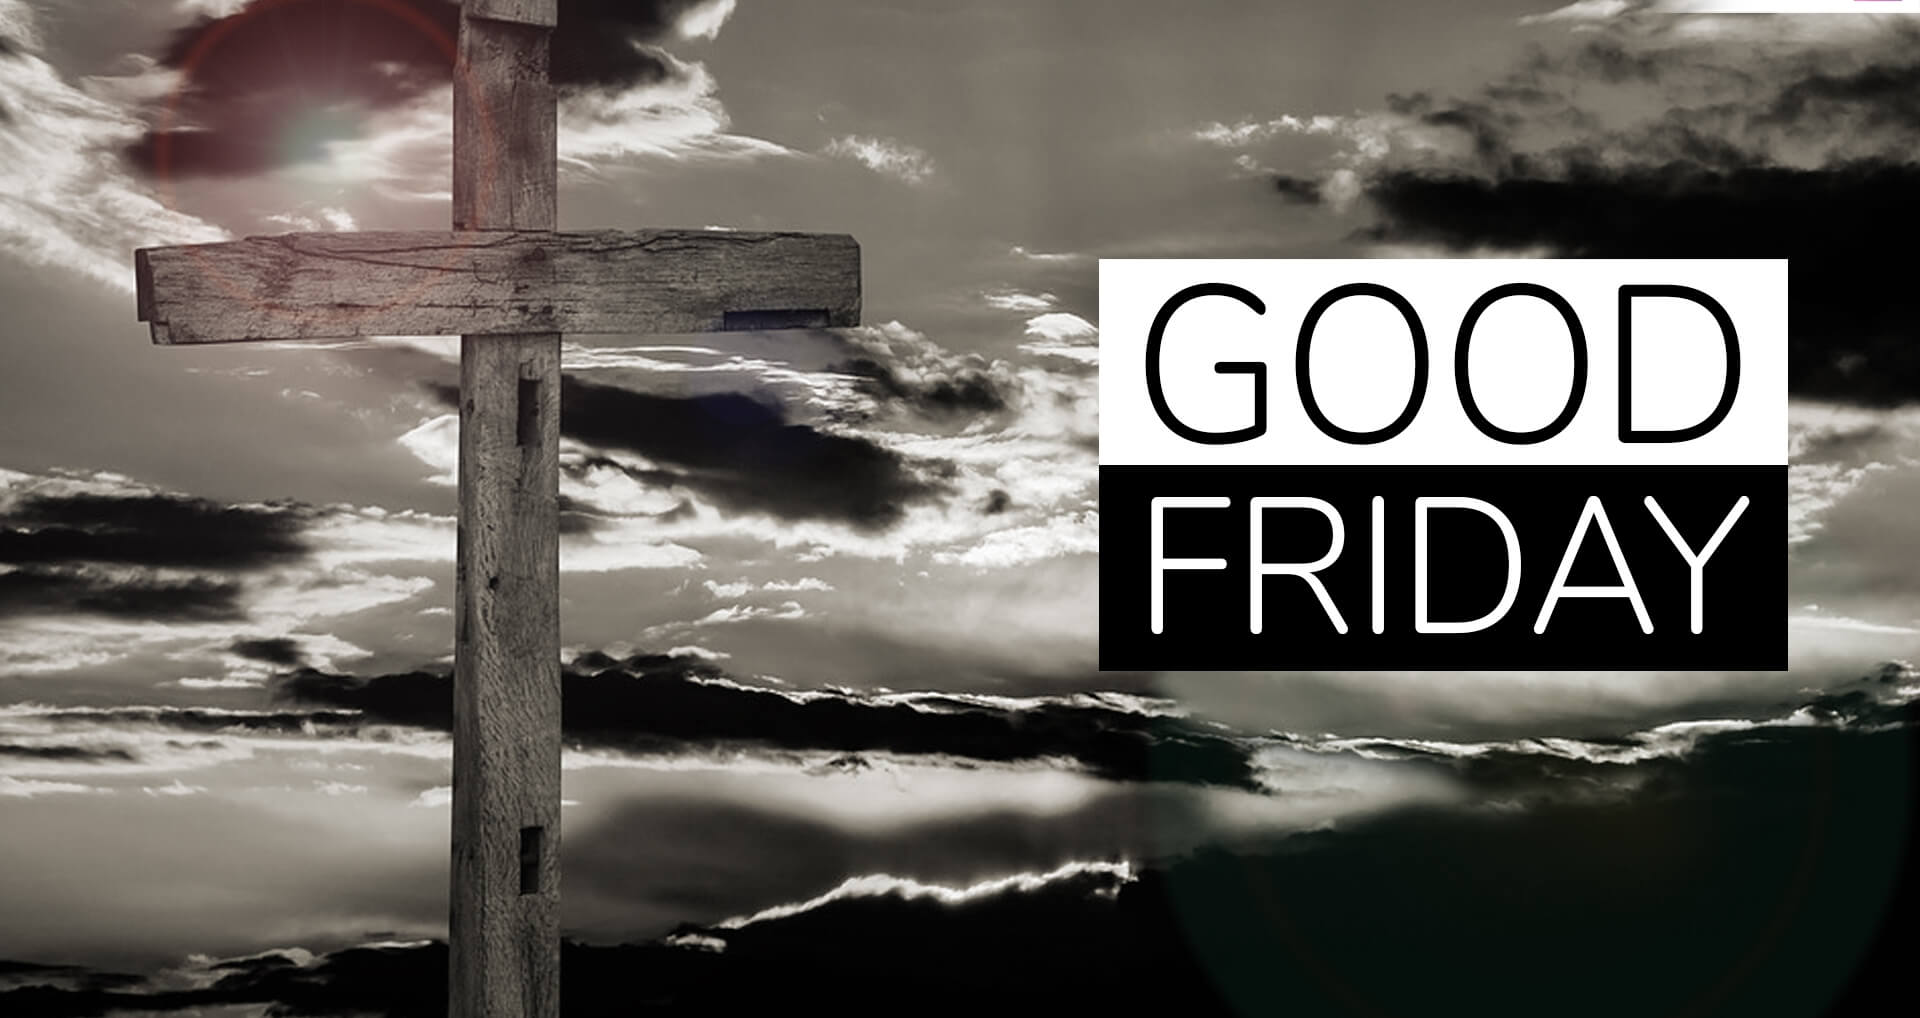 Good Friday Images Wishes